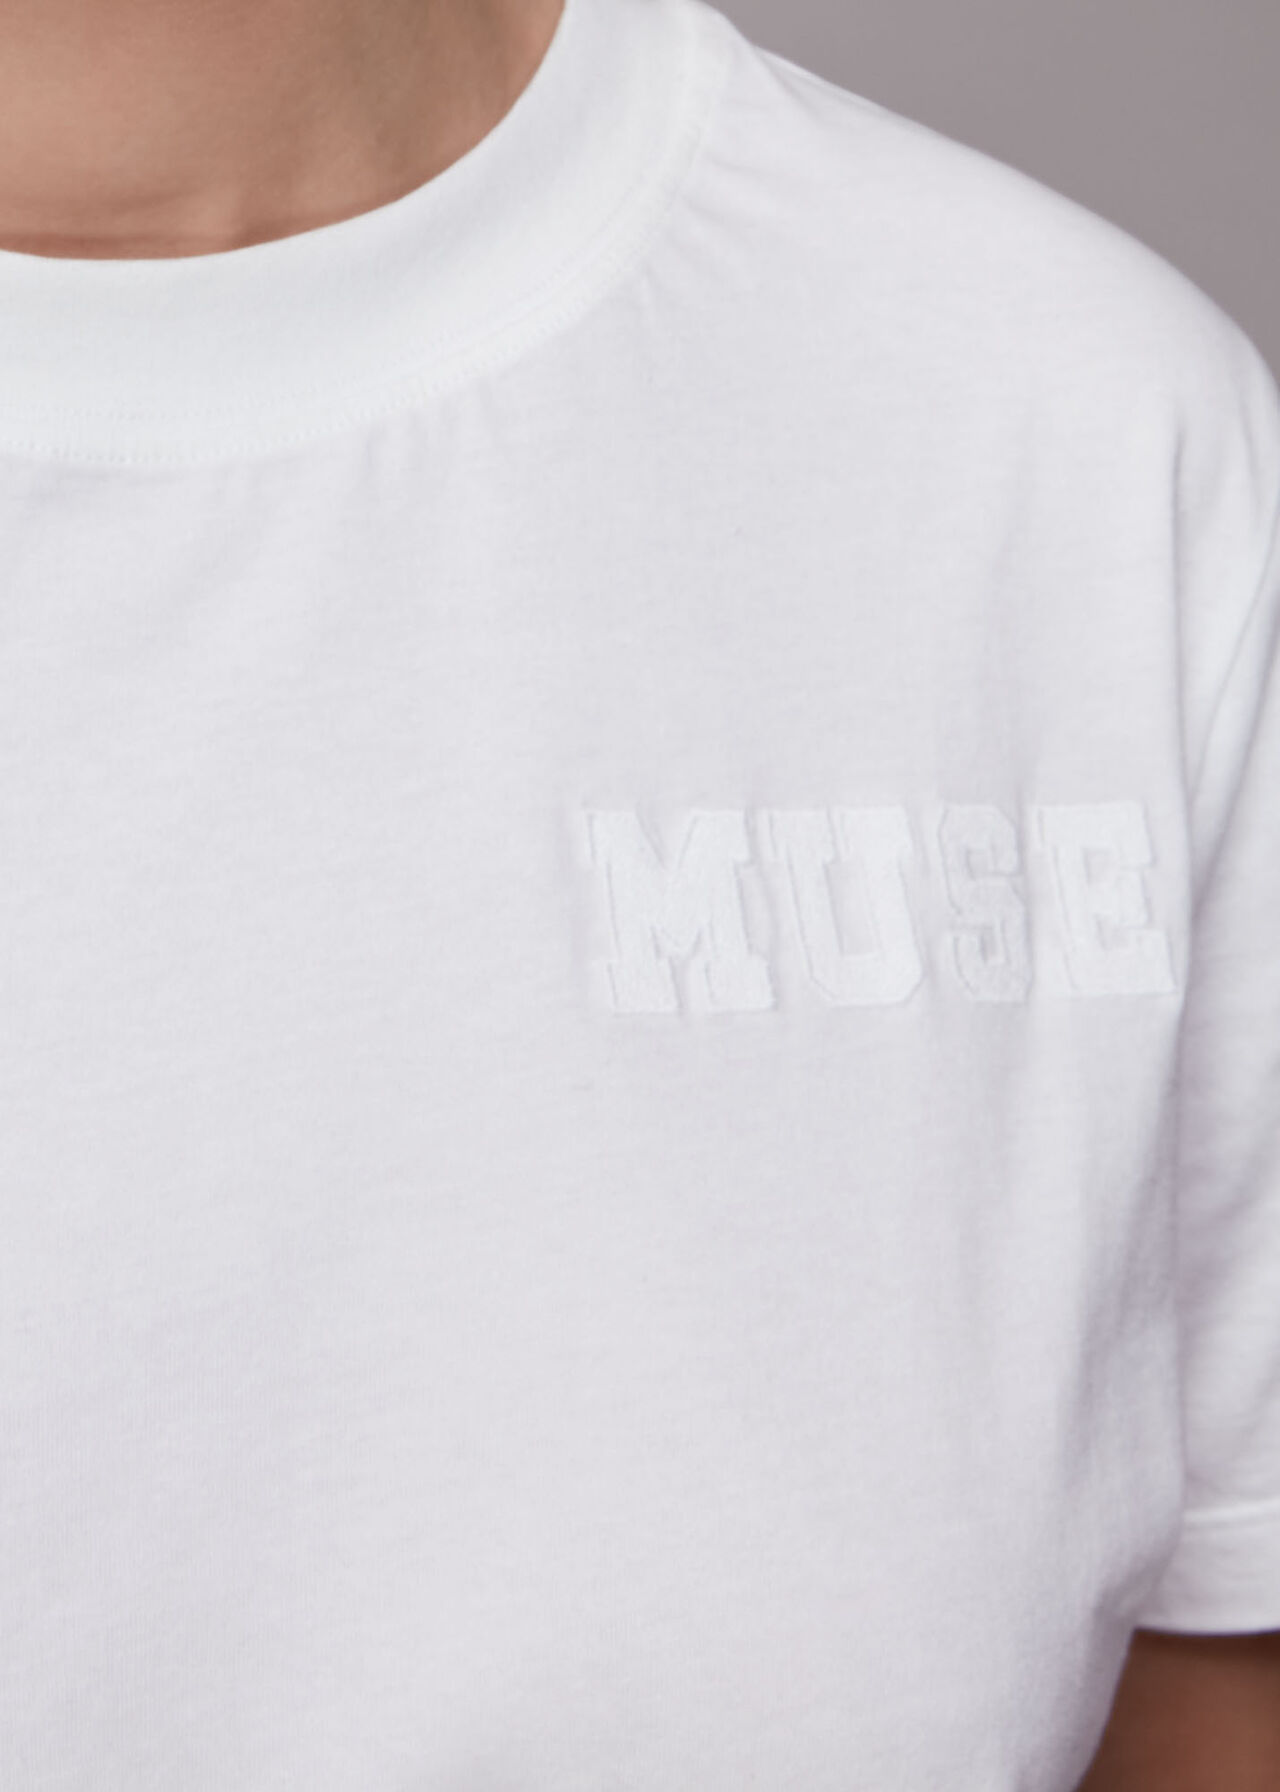 Muse Embroidered T Shirt